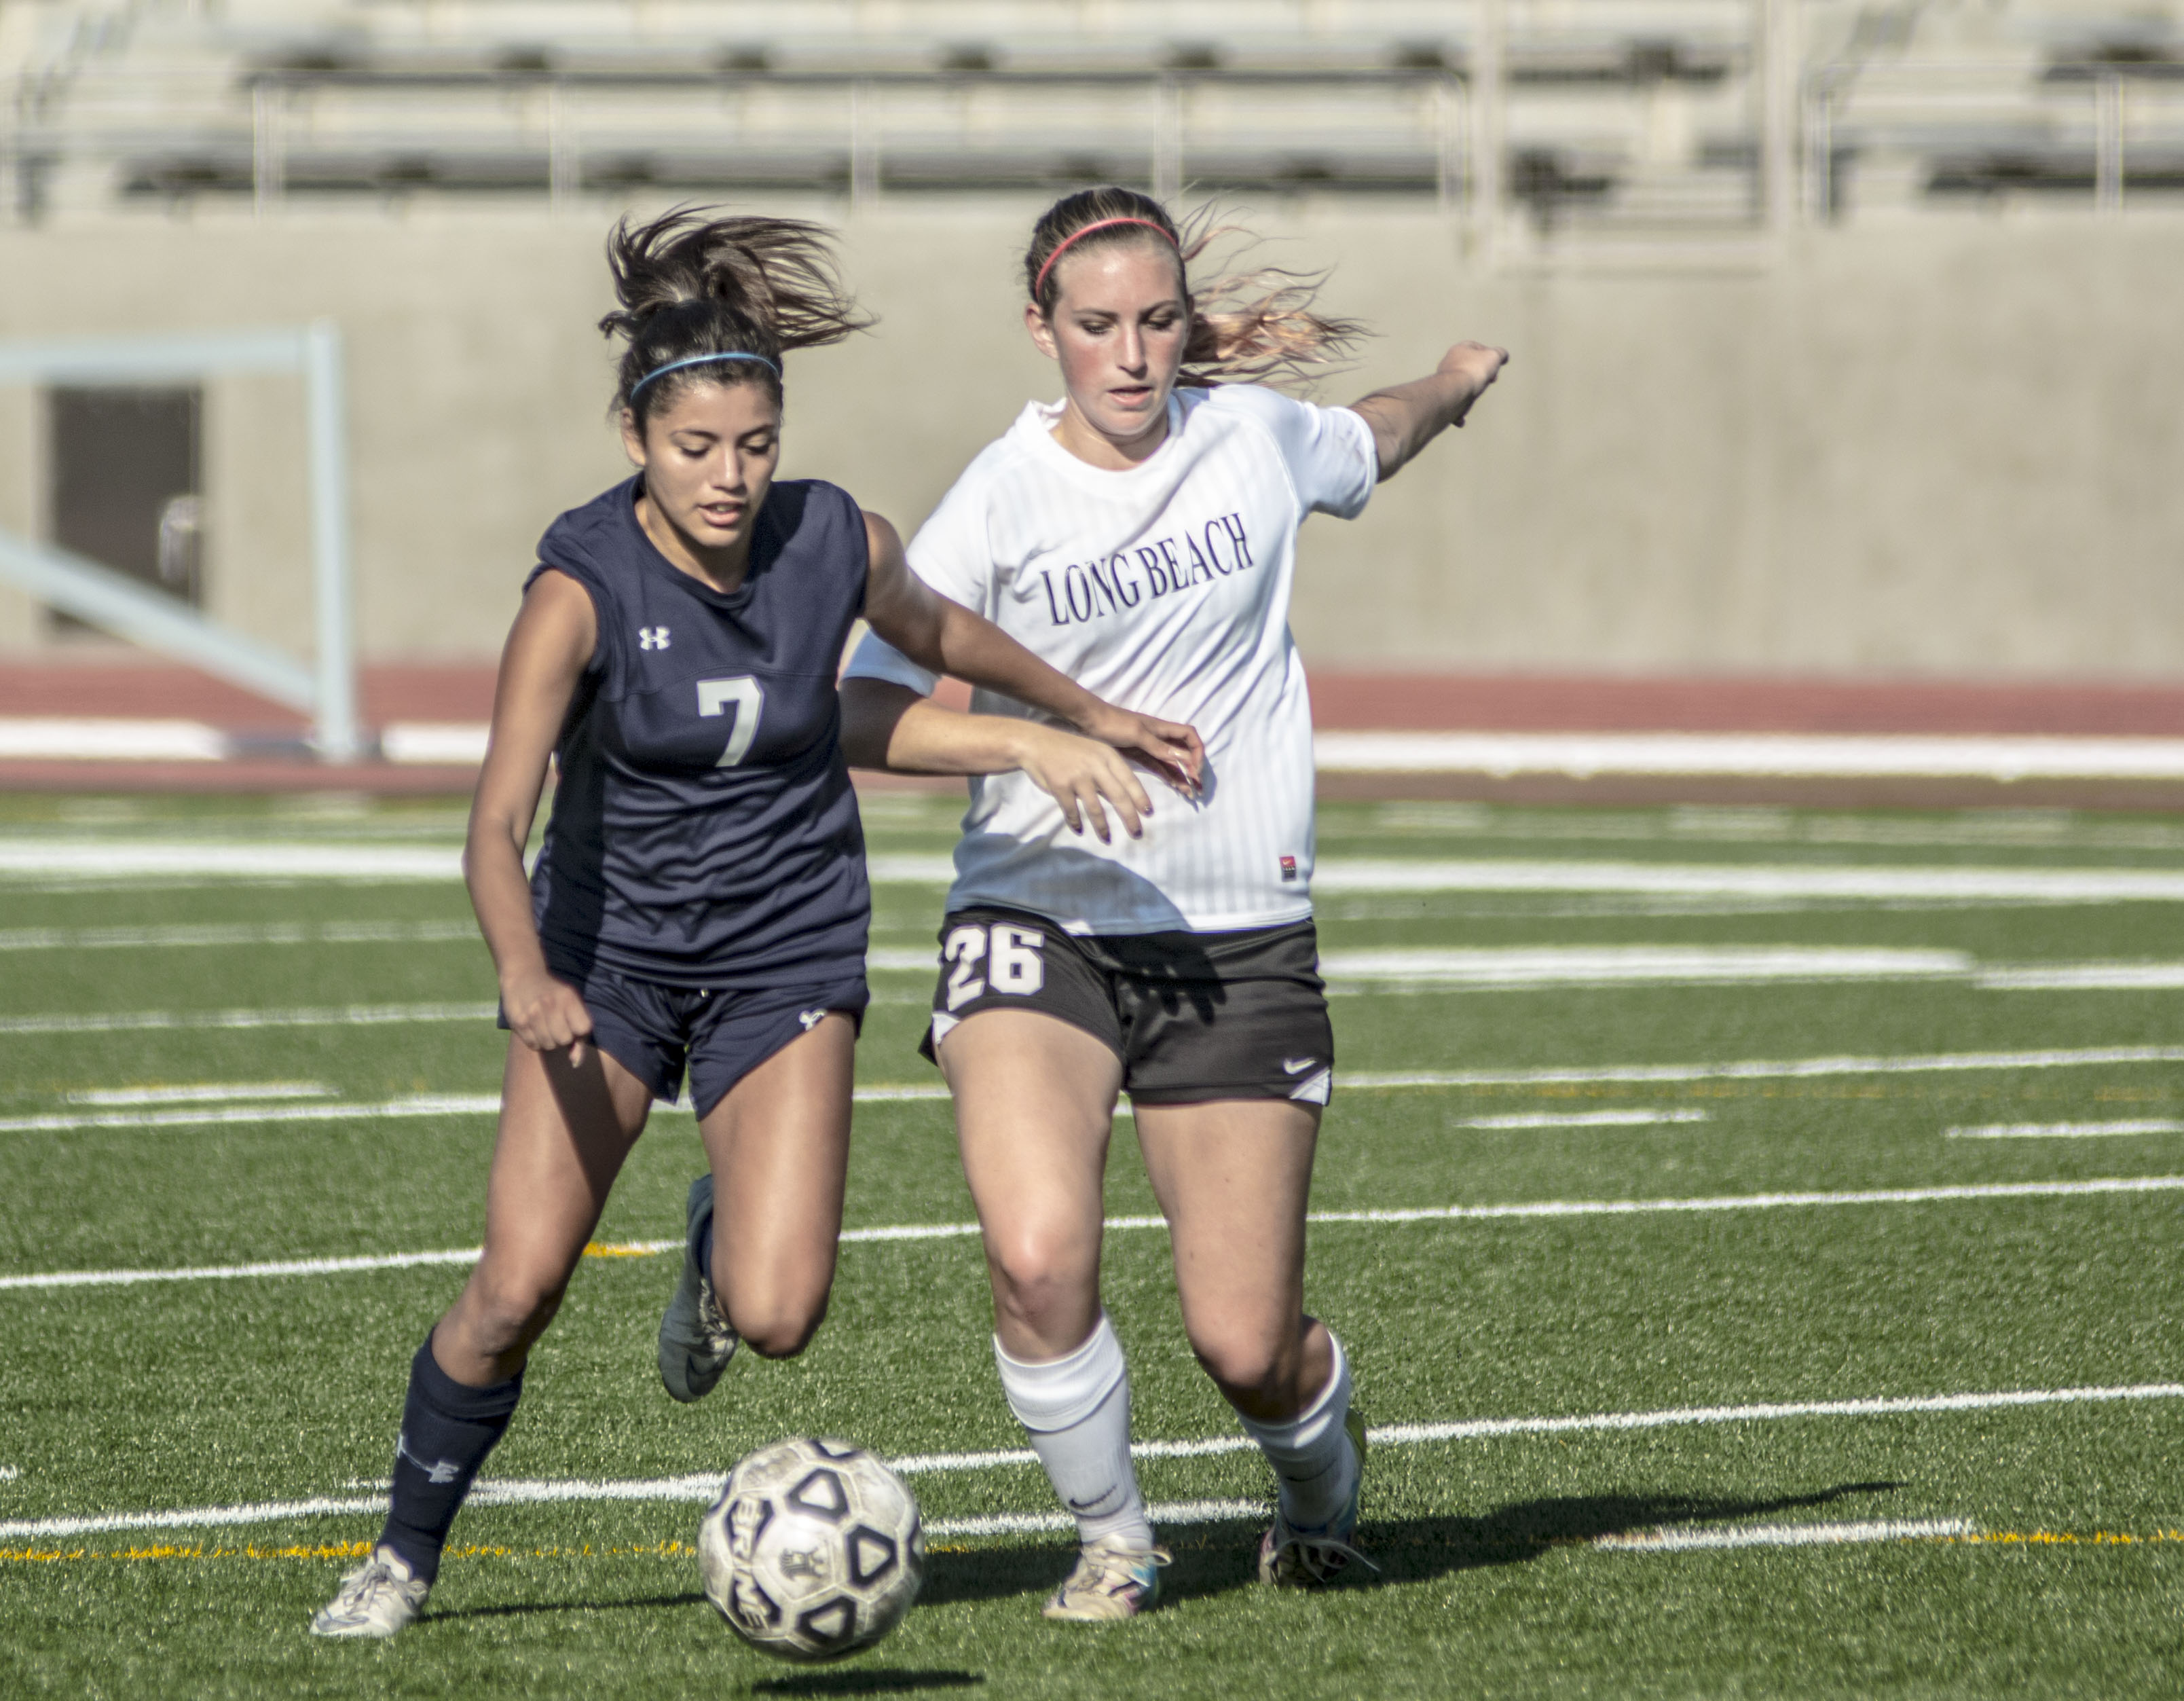 El Camino women's soccer team ends game in a scoreless draw versus Long Beach City College